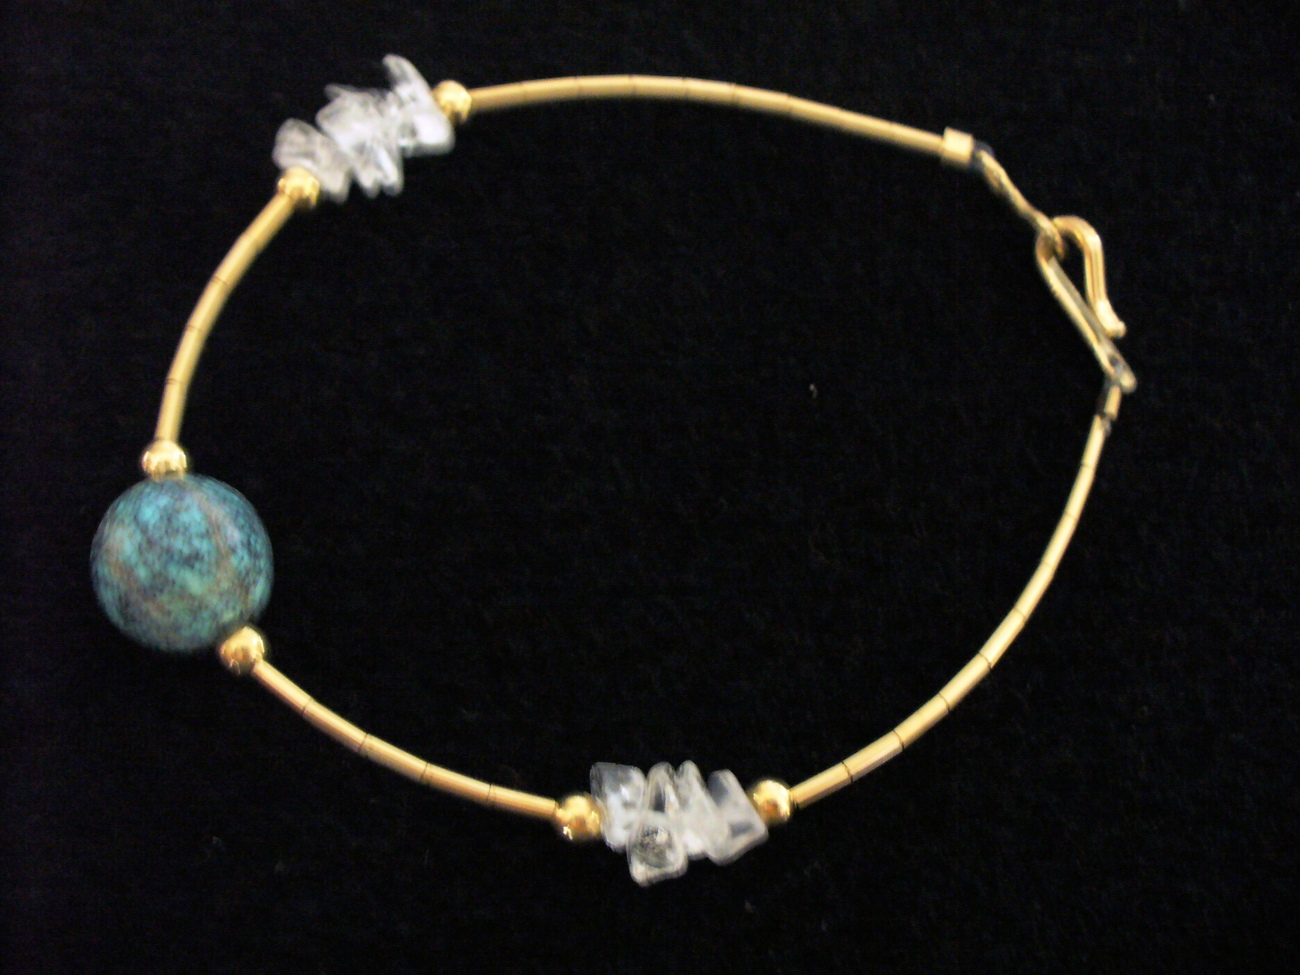 Turquoise and Quartz Liquid 12/20 Gold Bracelet